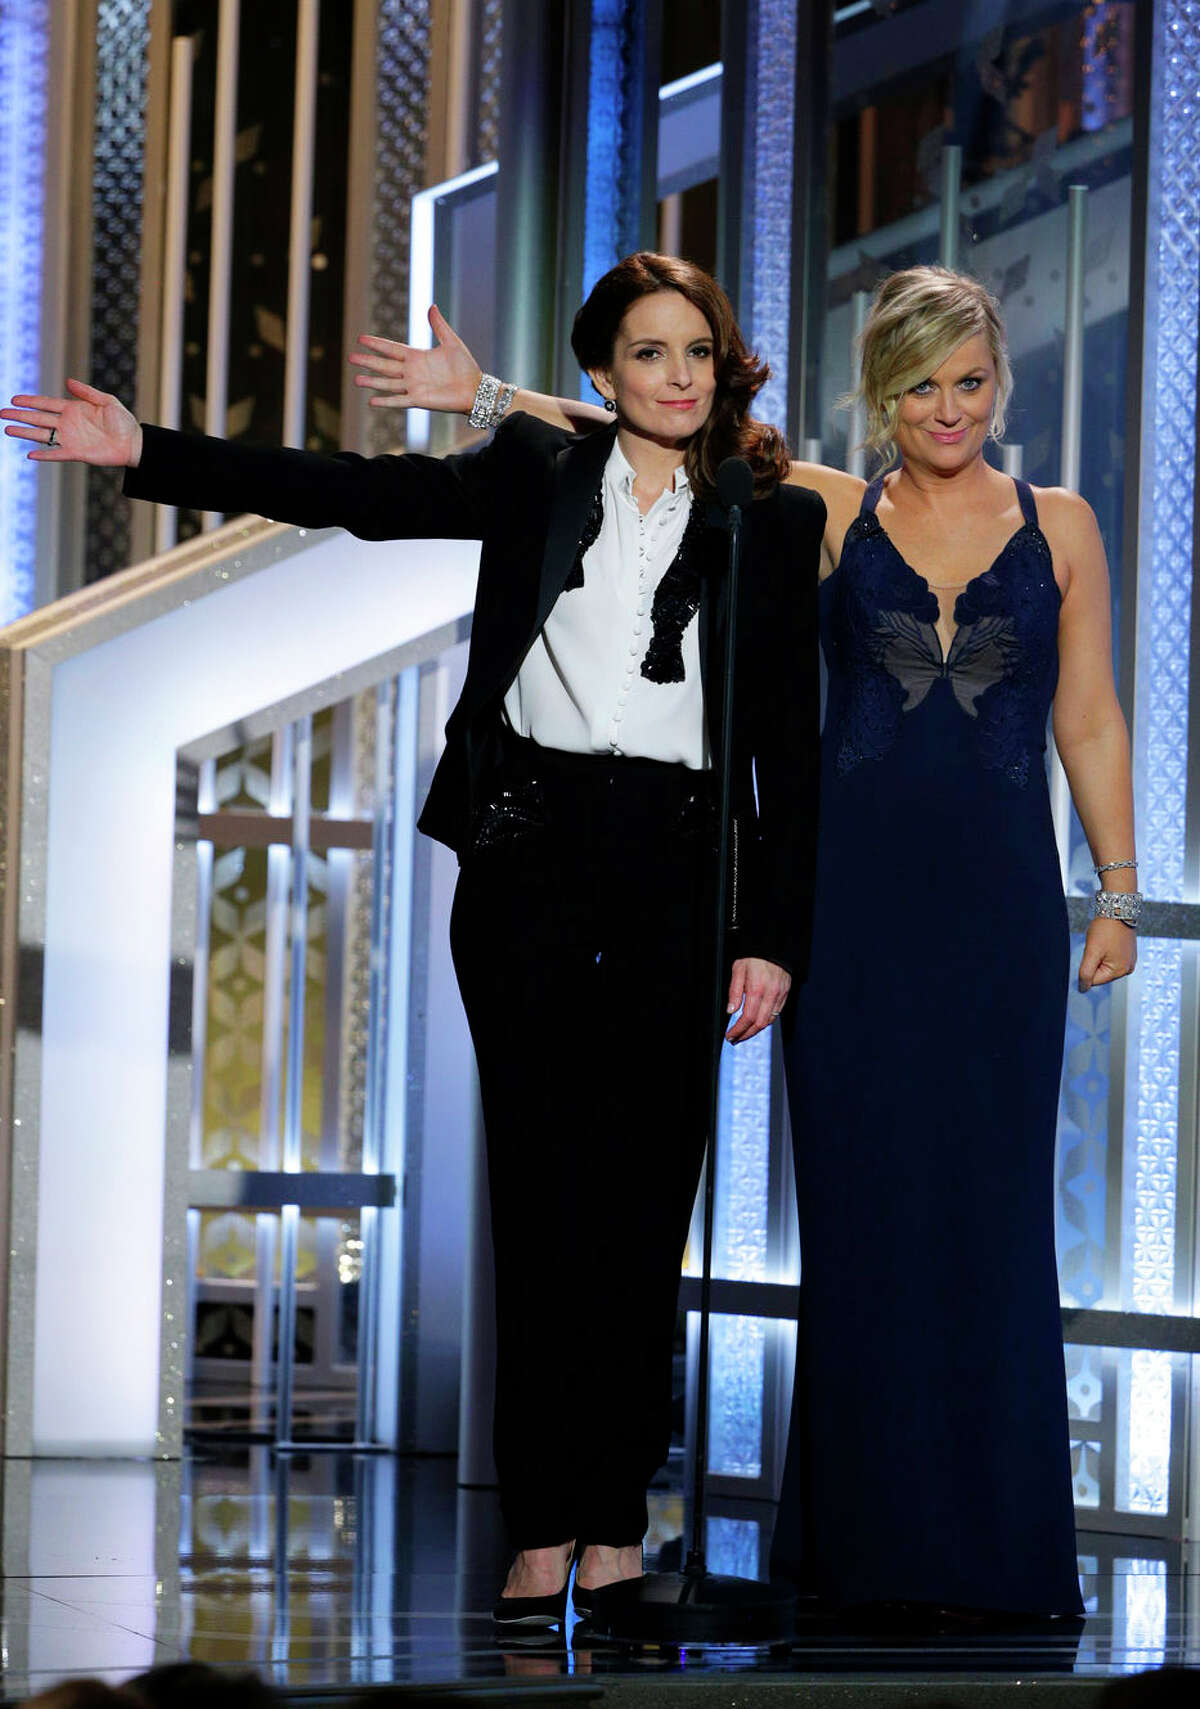 In this image released by NBC, co-hosts Tiny Fey, left, and Amy Poehler introduce Oprah Winfrey at the 72nd Annual Golden Globe Awards on Sunday, Jan. 11, 2015, at the Beverly Hilton Hotel in Beverly Hills, Calif.